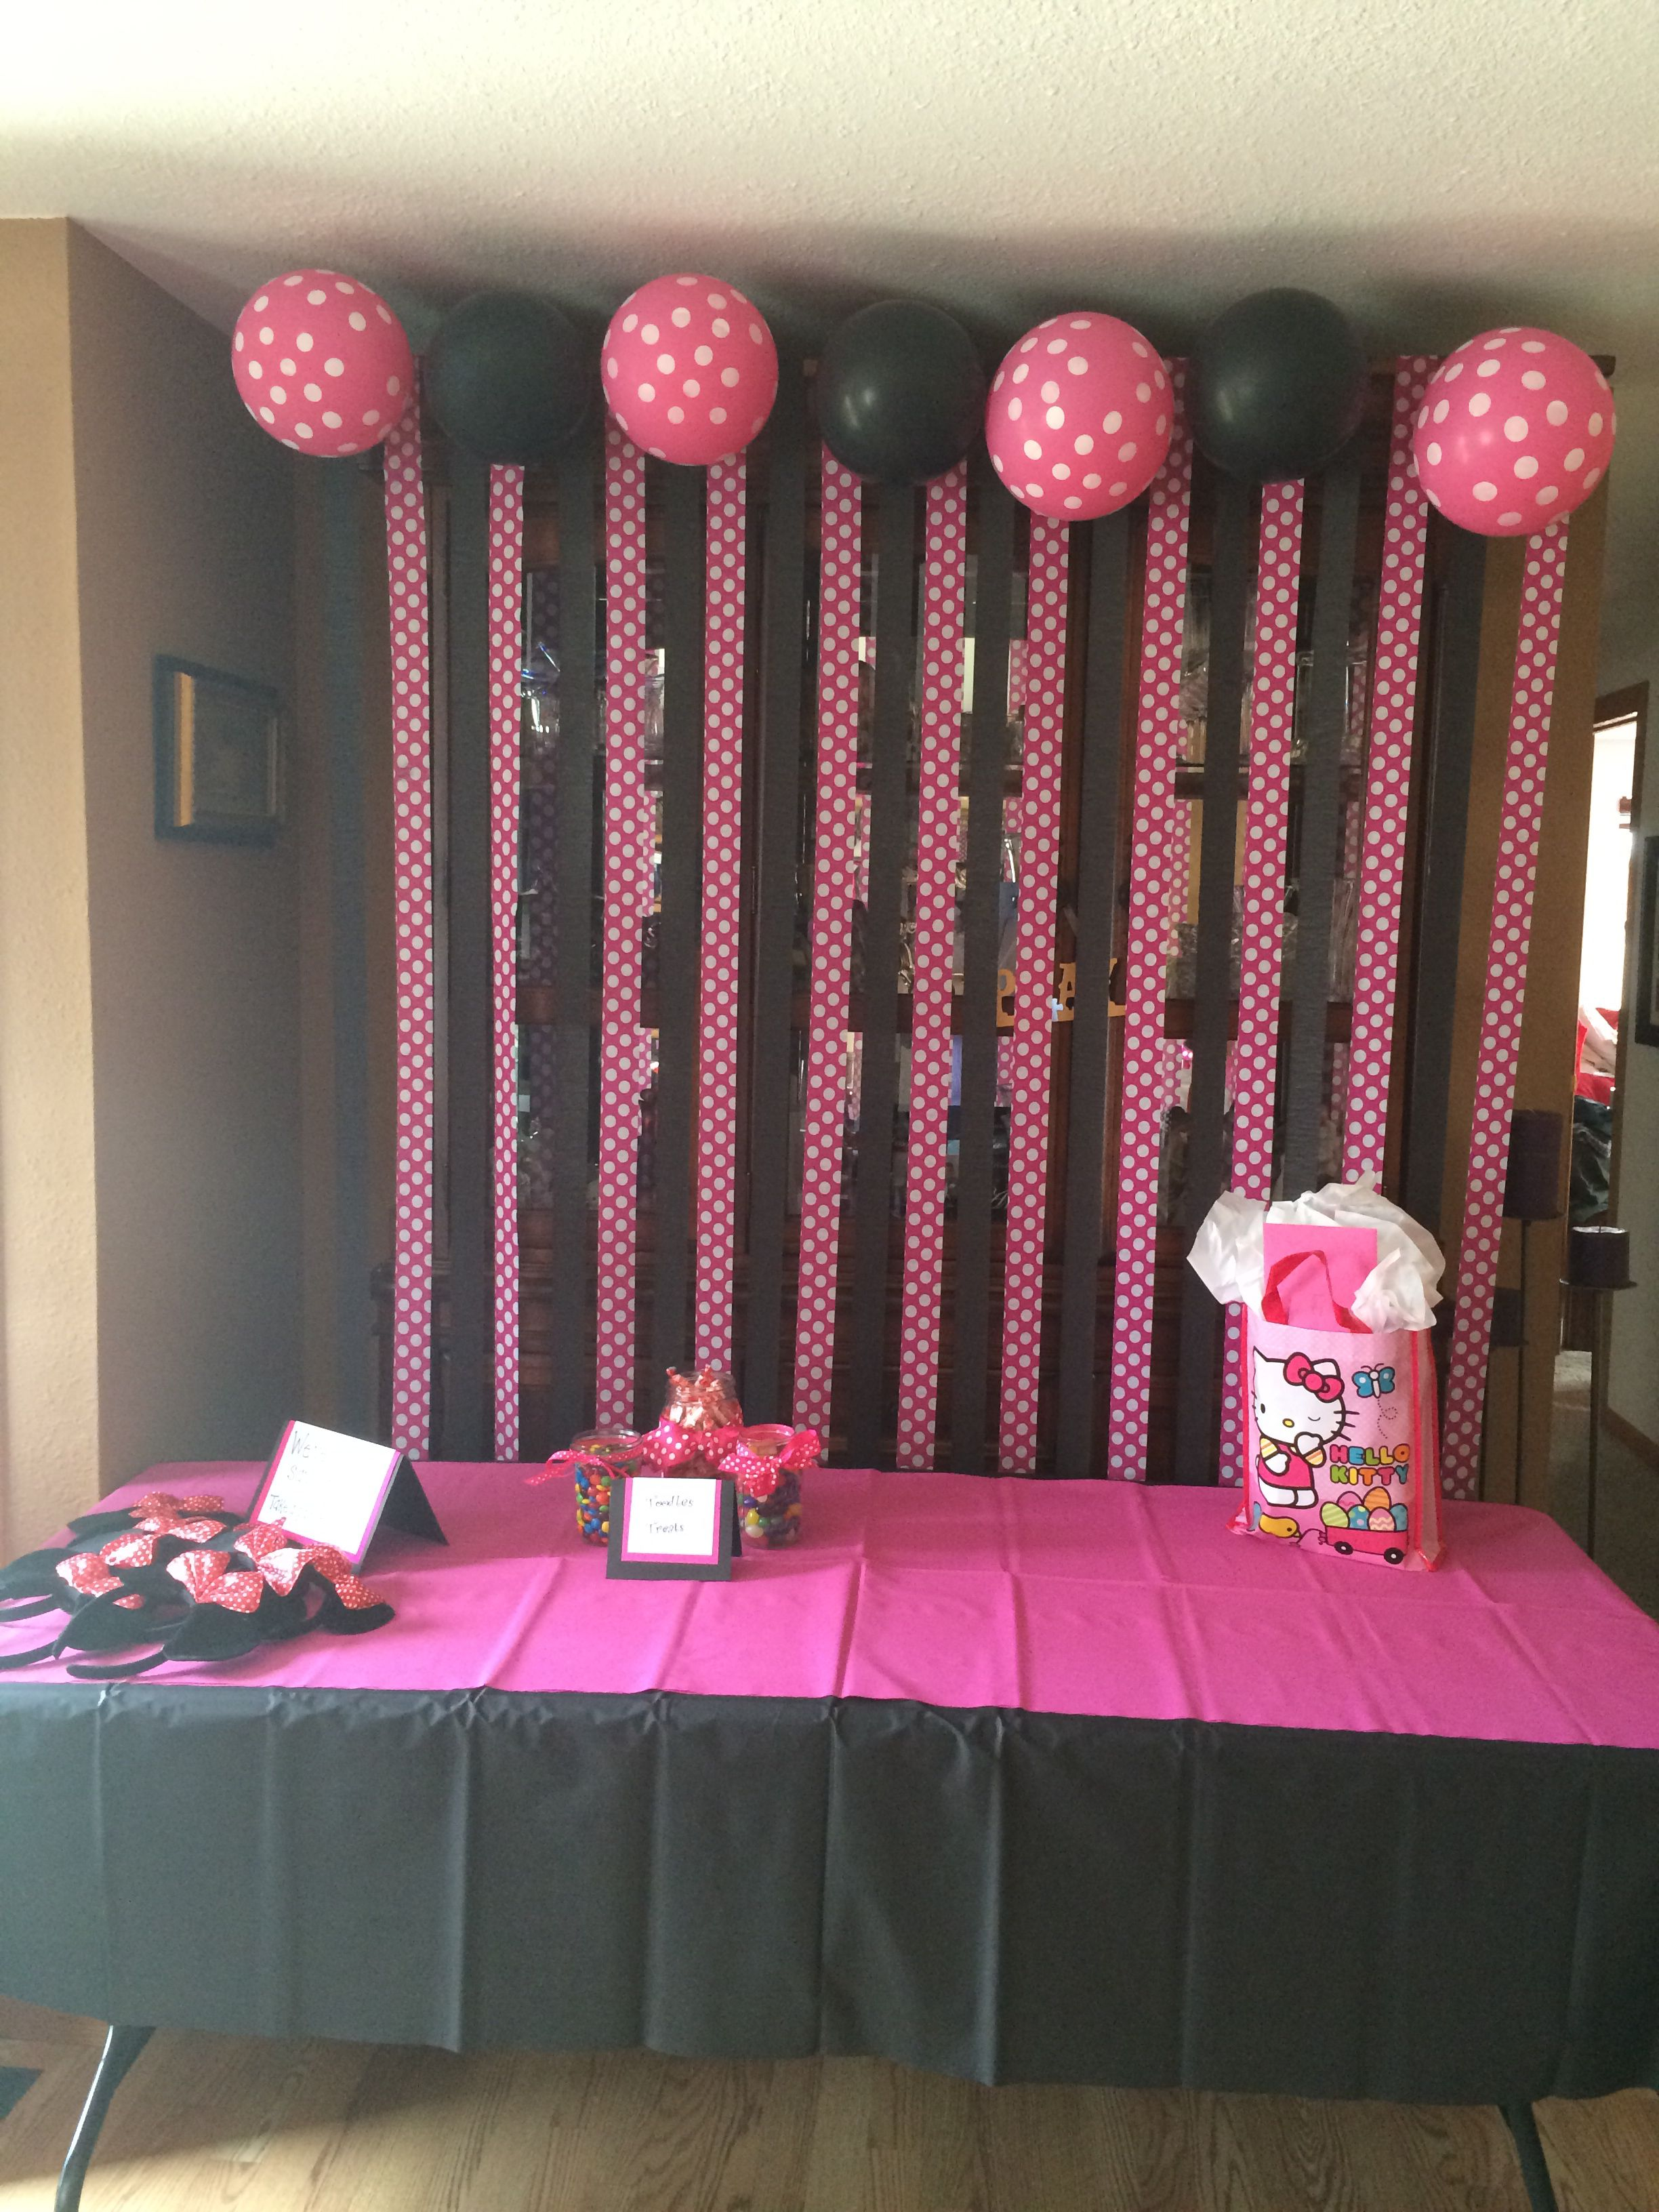 Minnie Mouse Party Decorations A Little Too Much Black But I Like The Idea